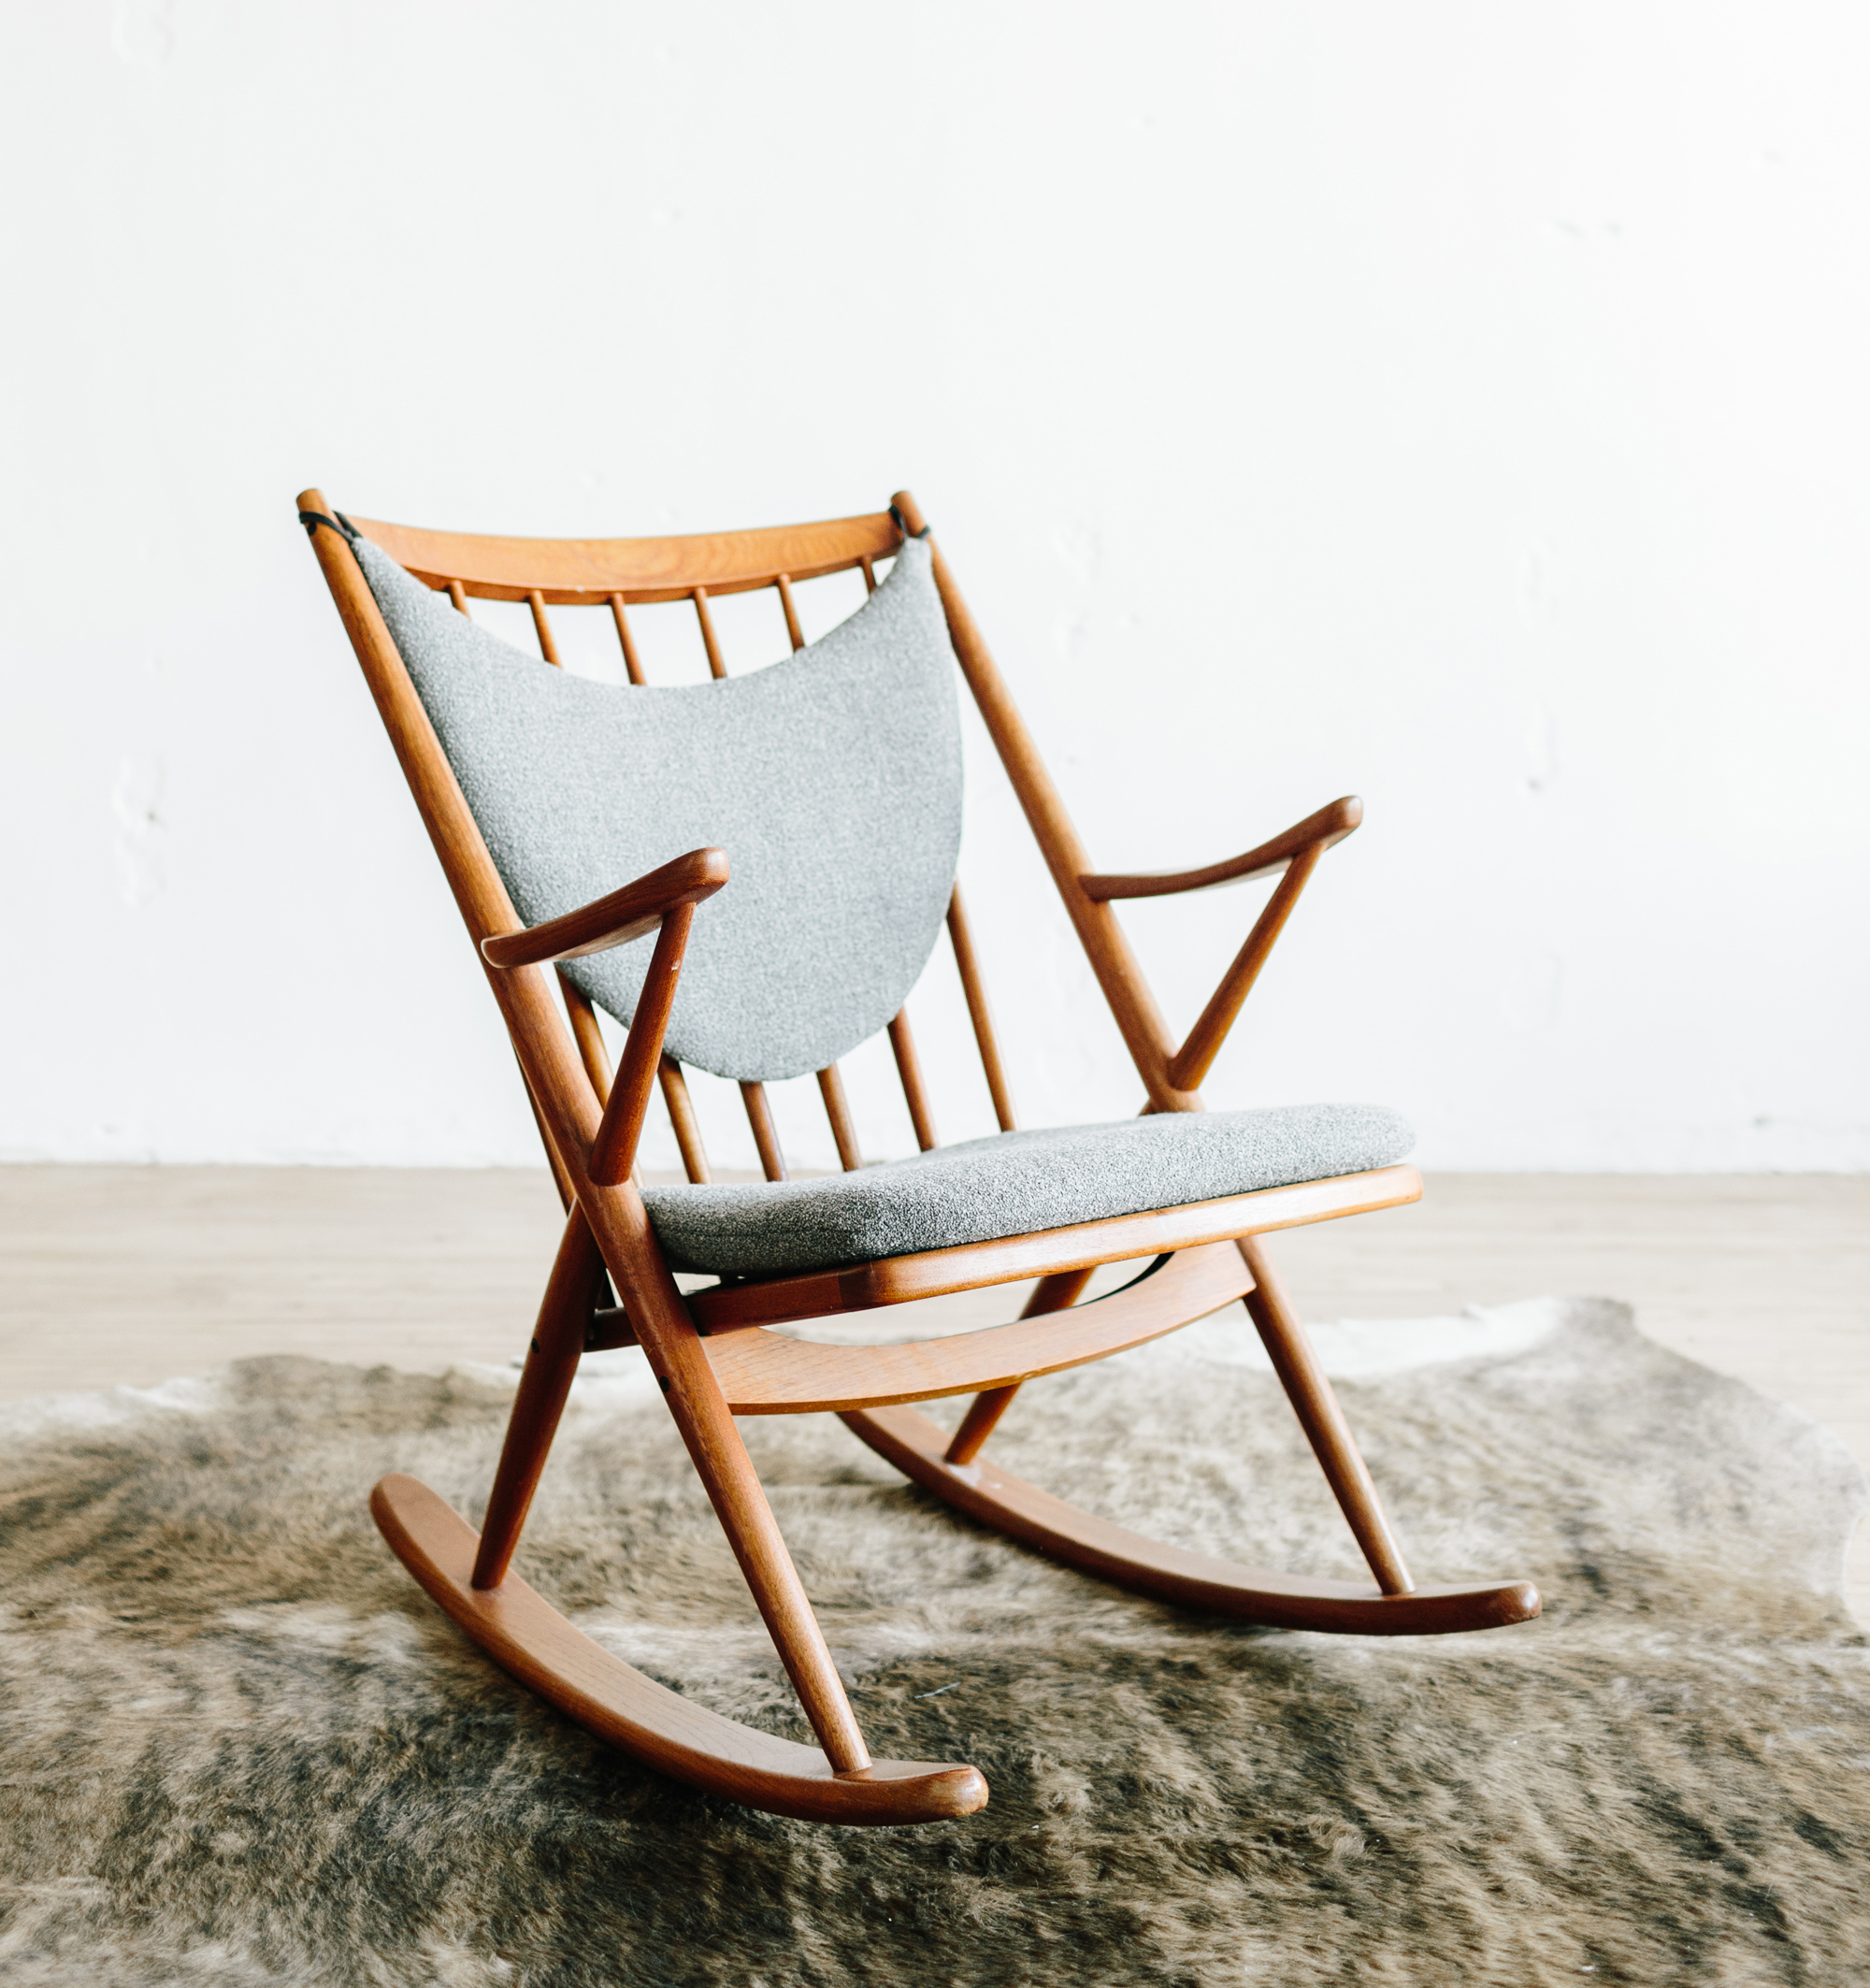 professionally restored - Giving new life to vintage Scandinavian furniture is what we are passionate about. In our big box society, feel good about your considerate and unique purchase. Buy for keeps. Your kids will thank you someday.